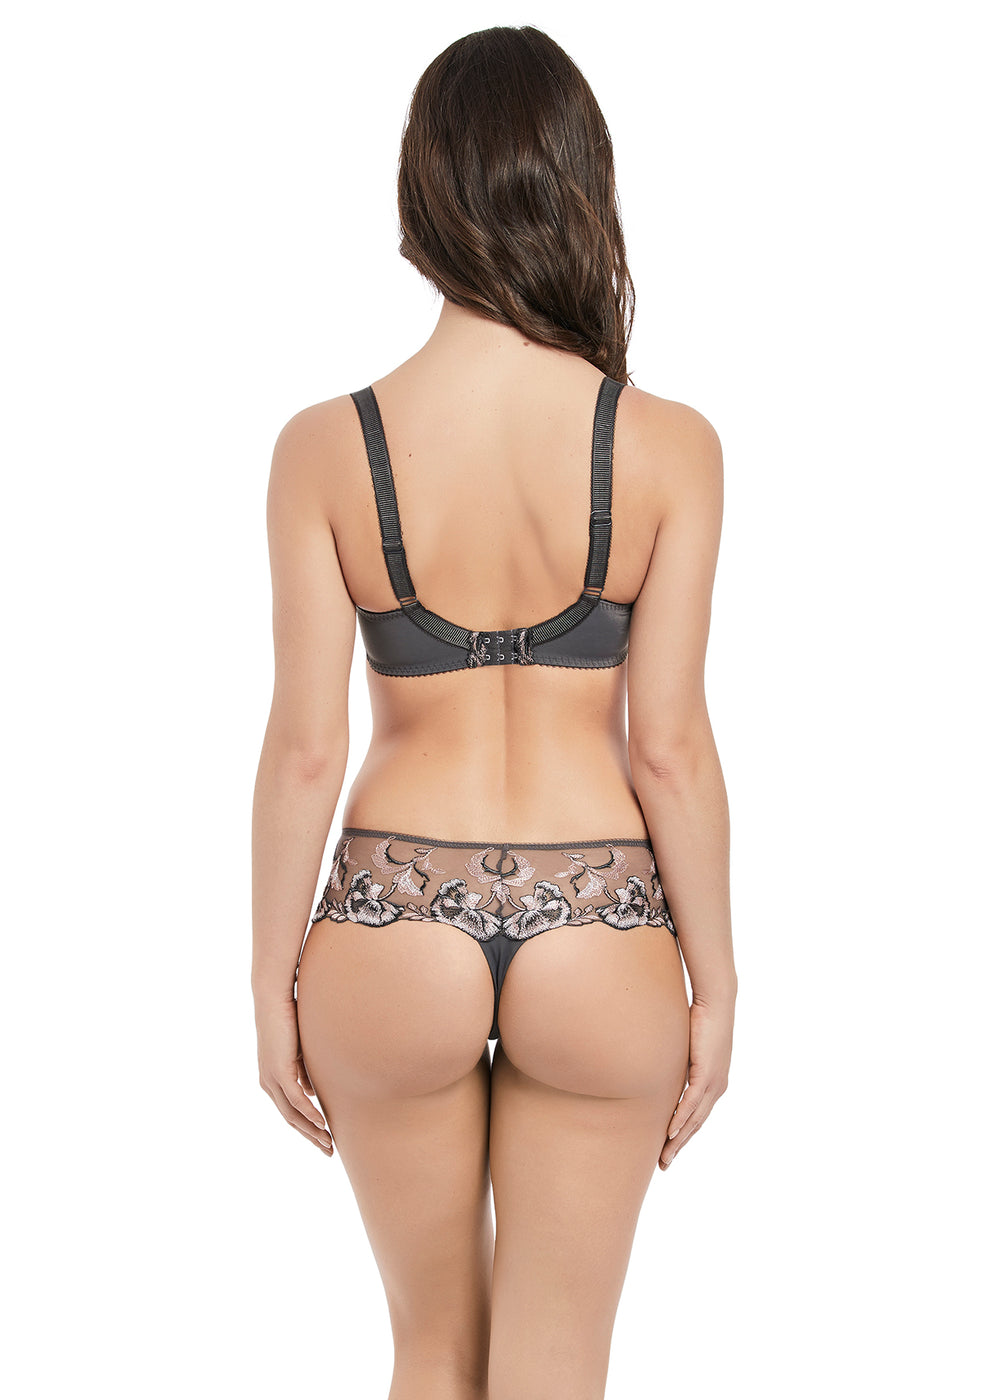 Angelina Thong - Sheer Essentials Lingerie & Swim